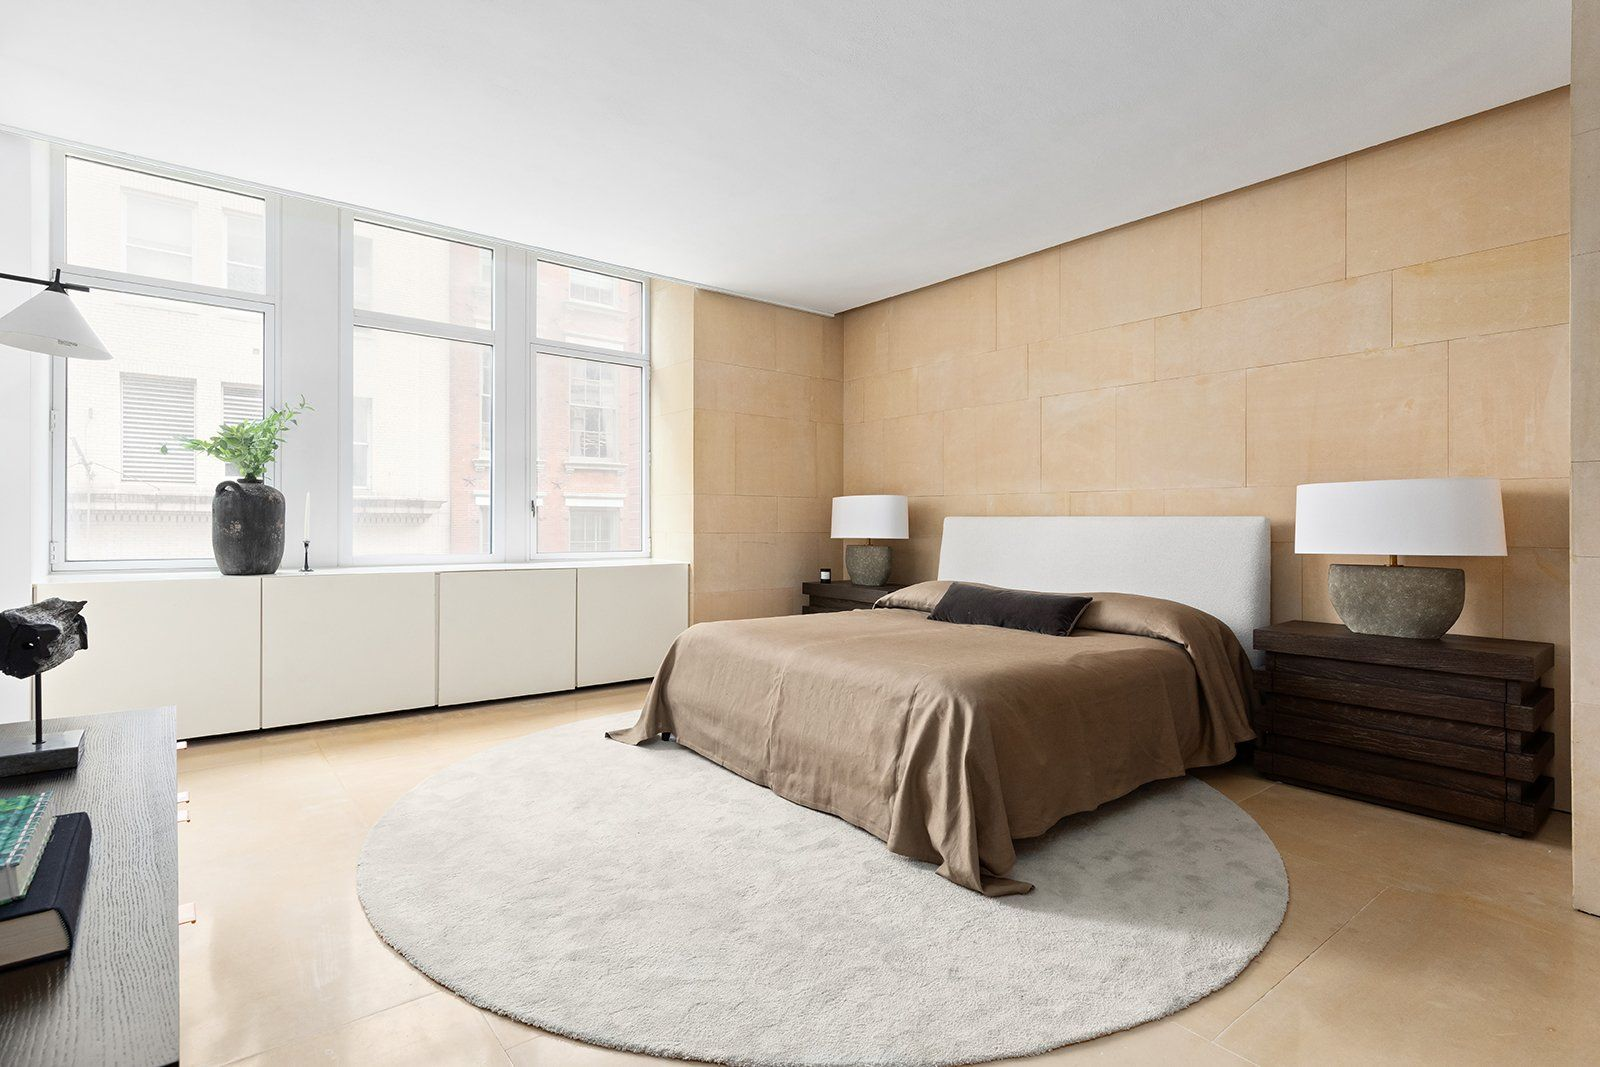 Kanye West And Kim Kardashian S Former Soho Pad Lists For 4 7m Soho Apartment Kanye West Apartments For Sale